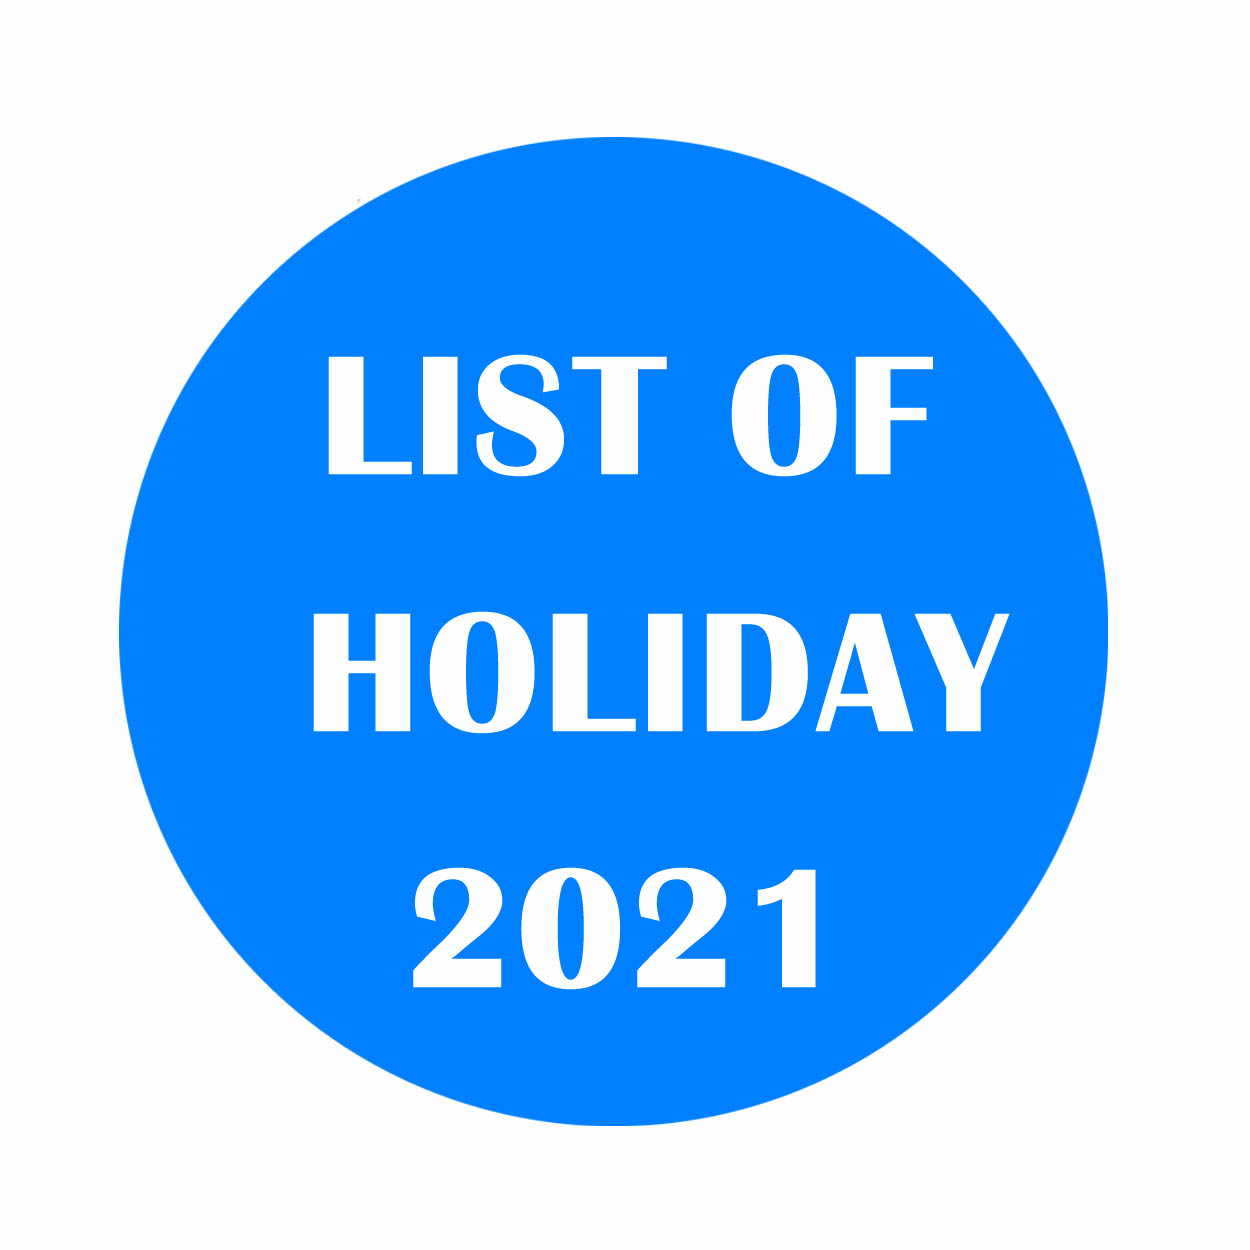 List of holiday 2021